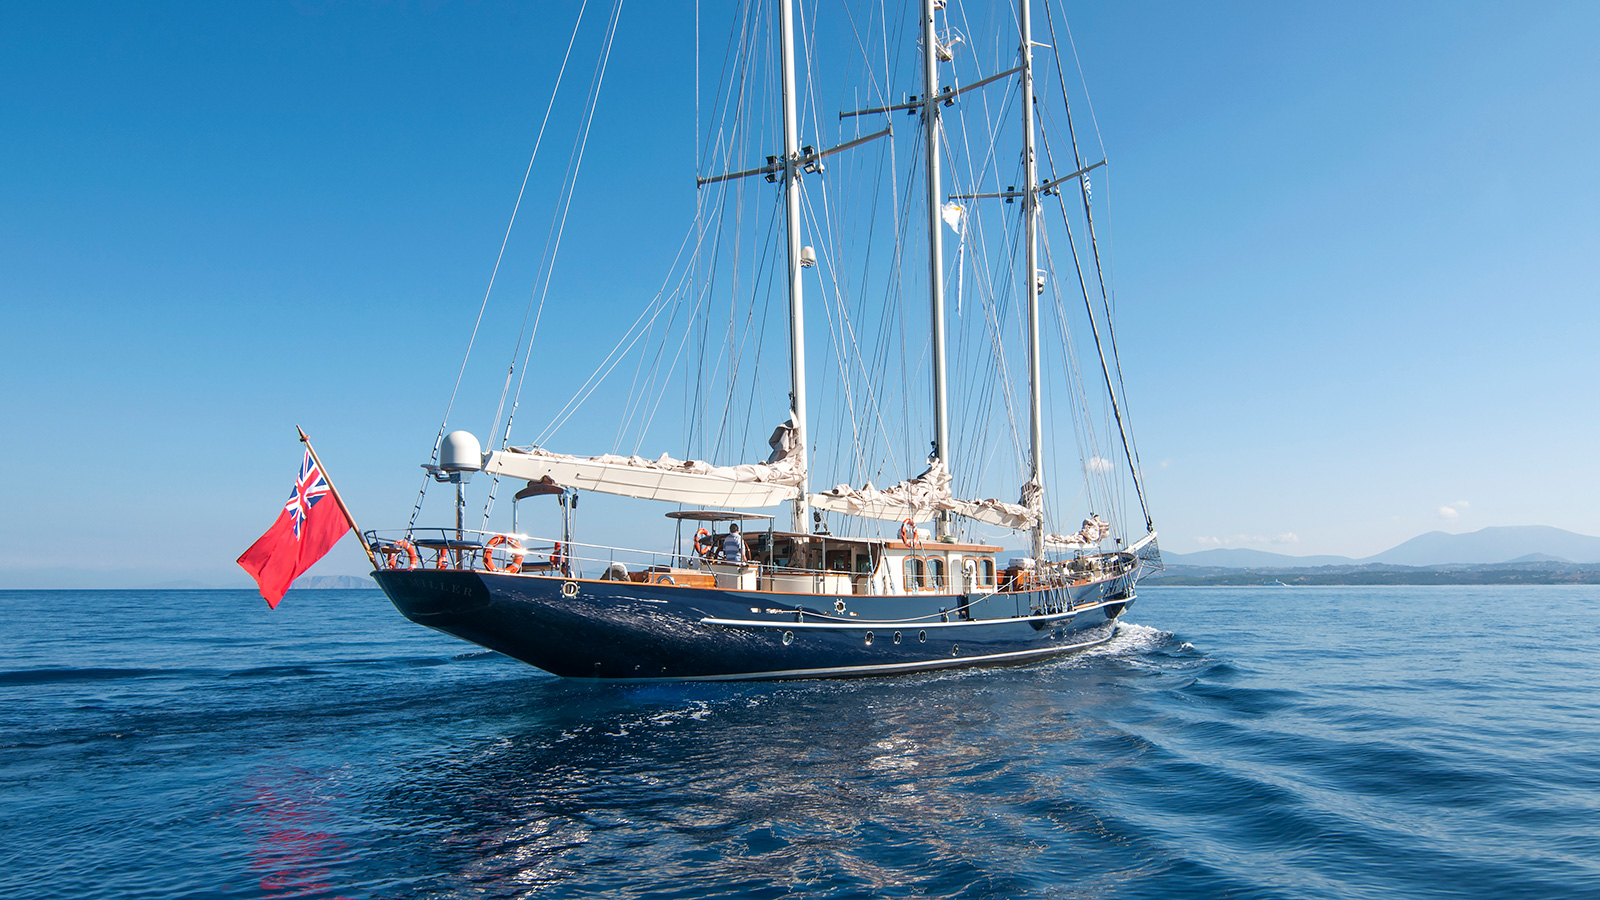 the-stern-of-restored-classic-schooner-sailing-super-yacht-malcolm-miller